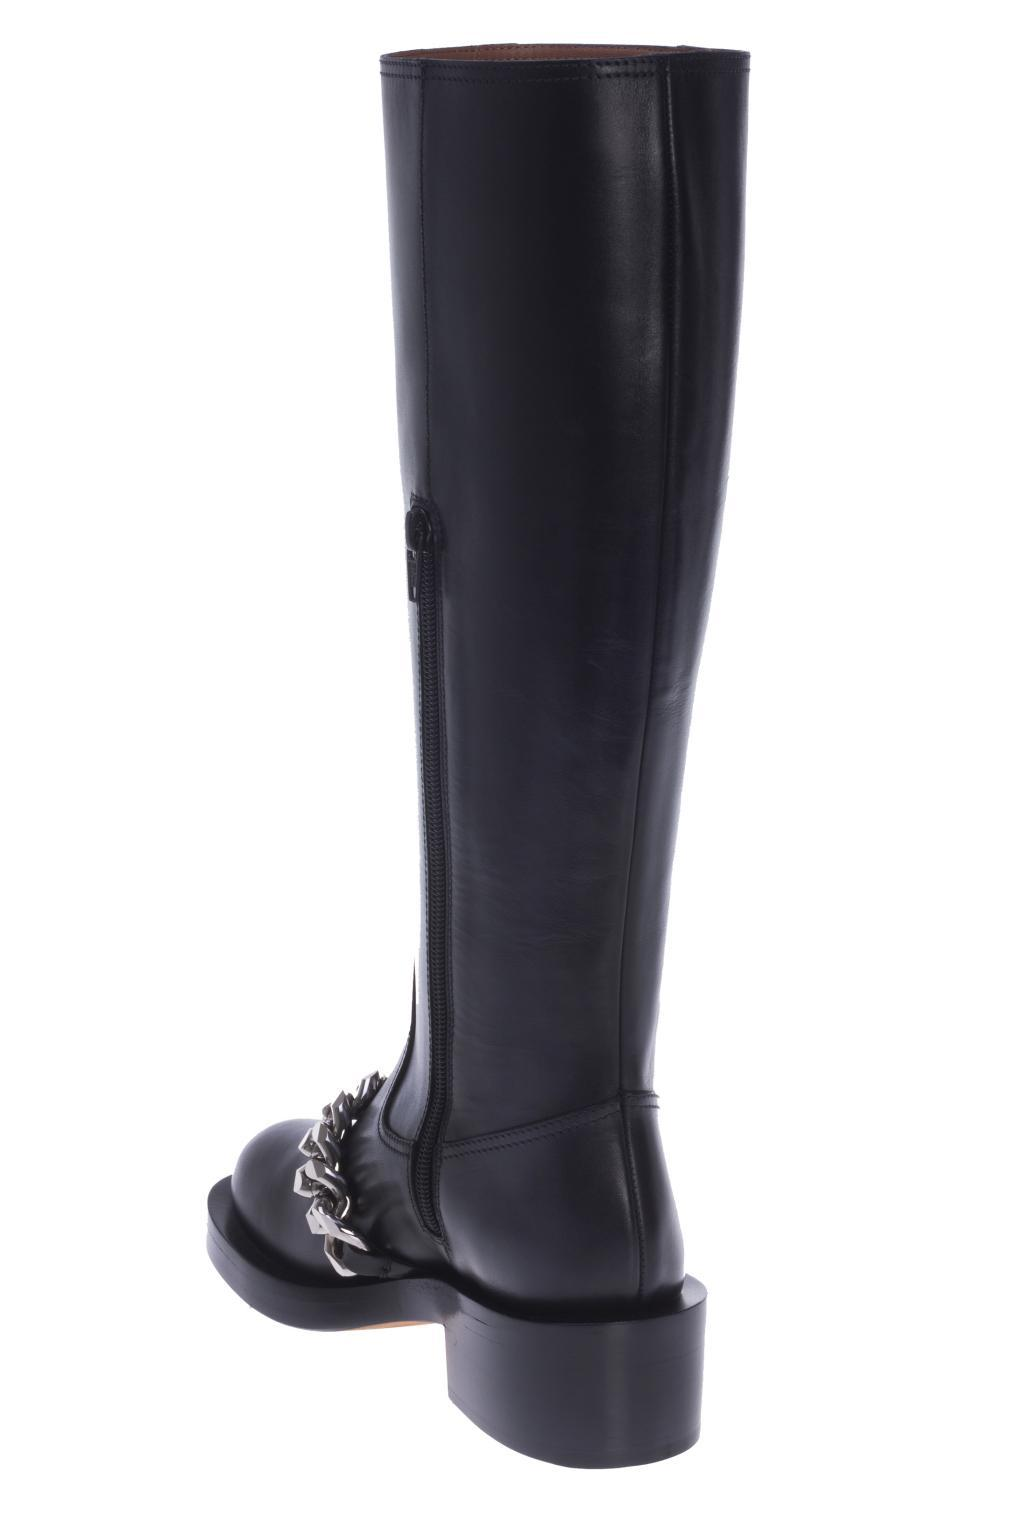 Givenchy Leather Metal Chain Boots in Black